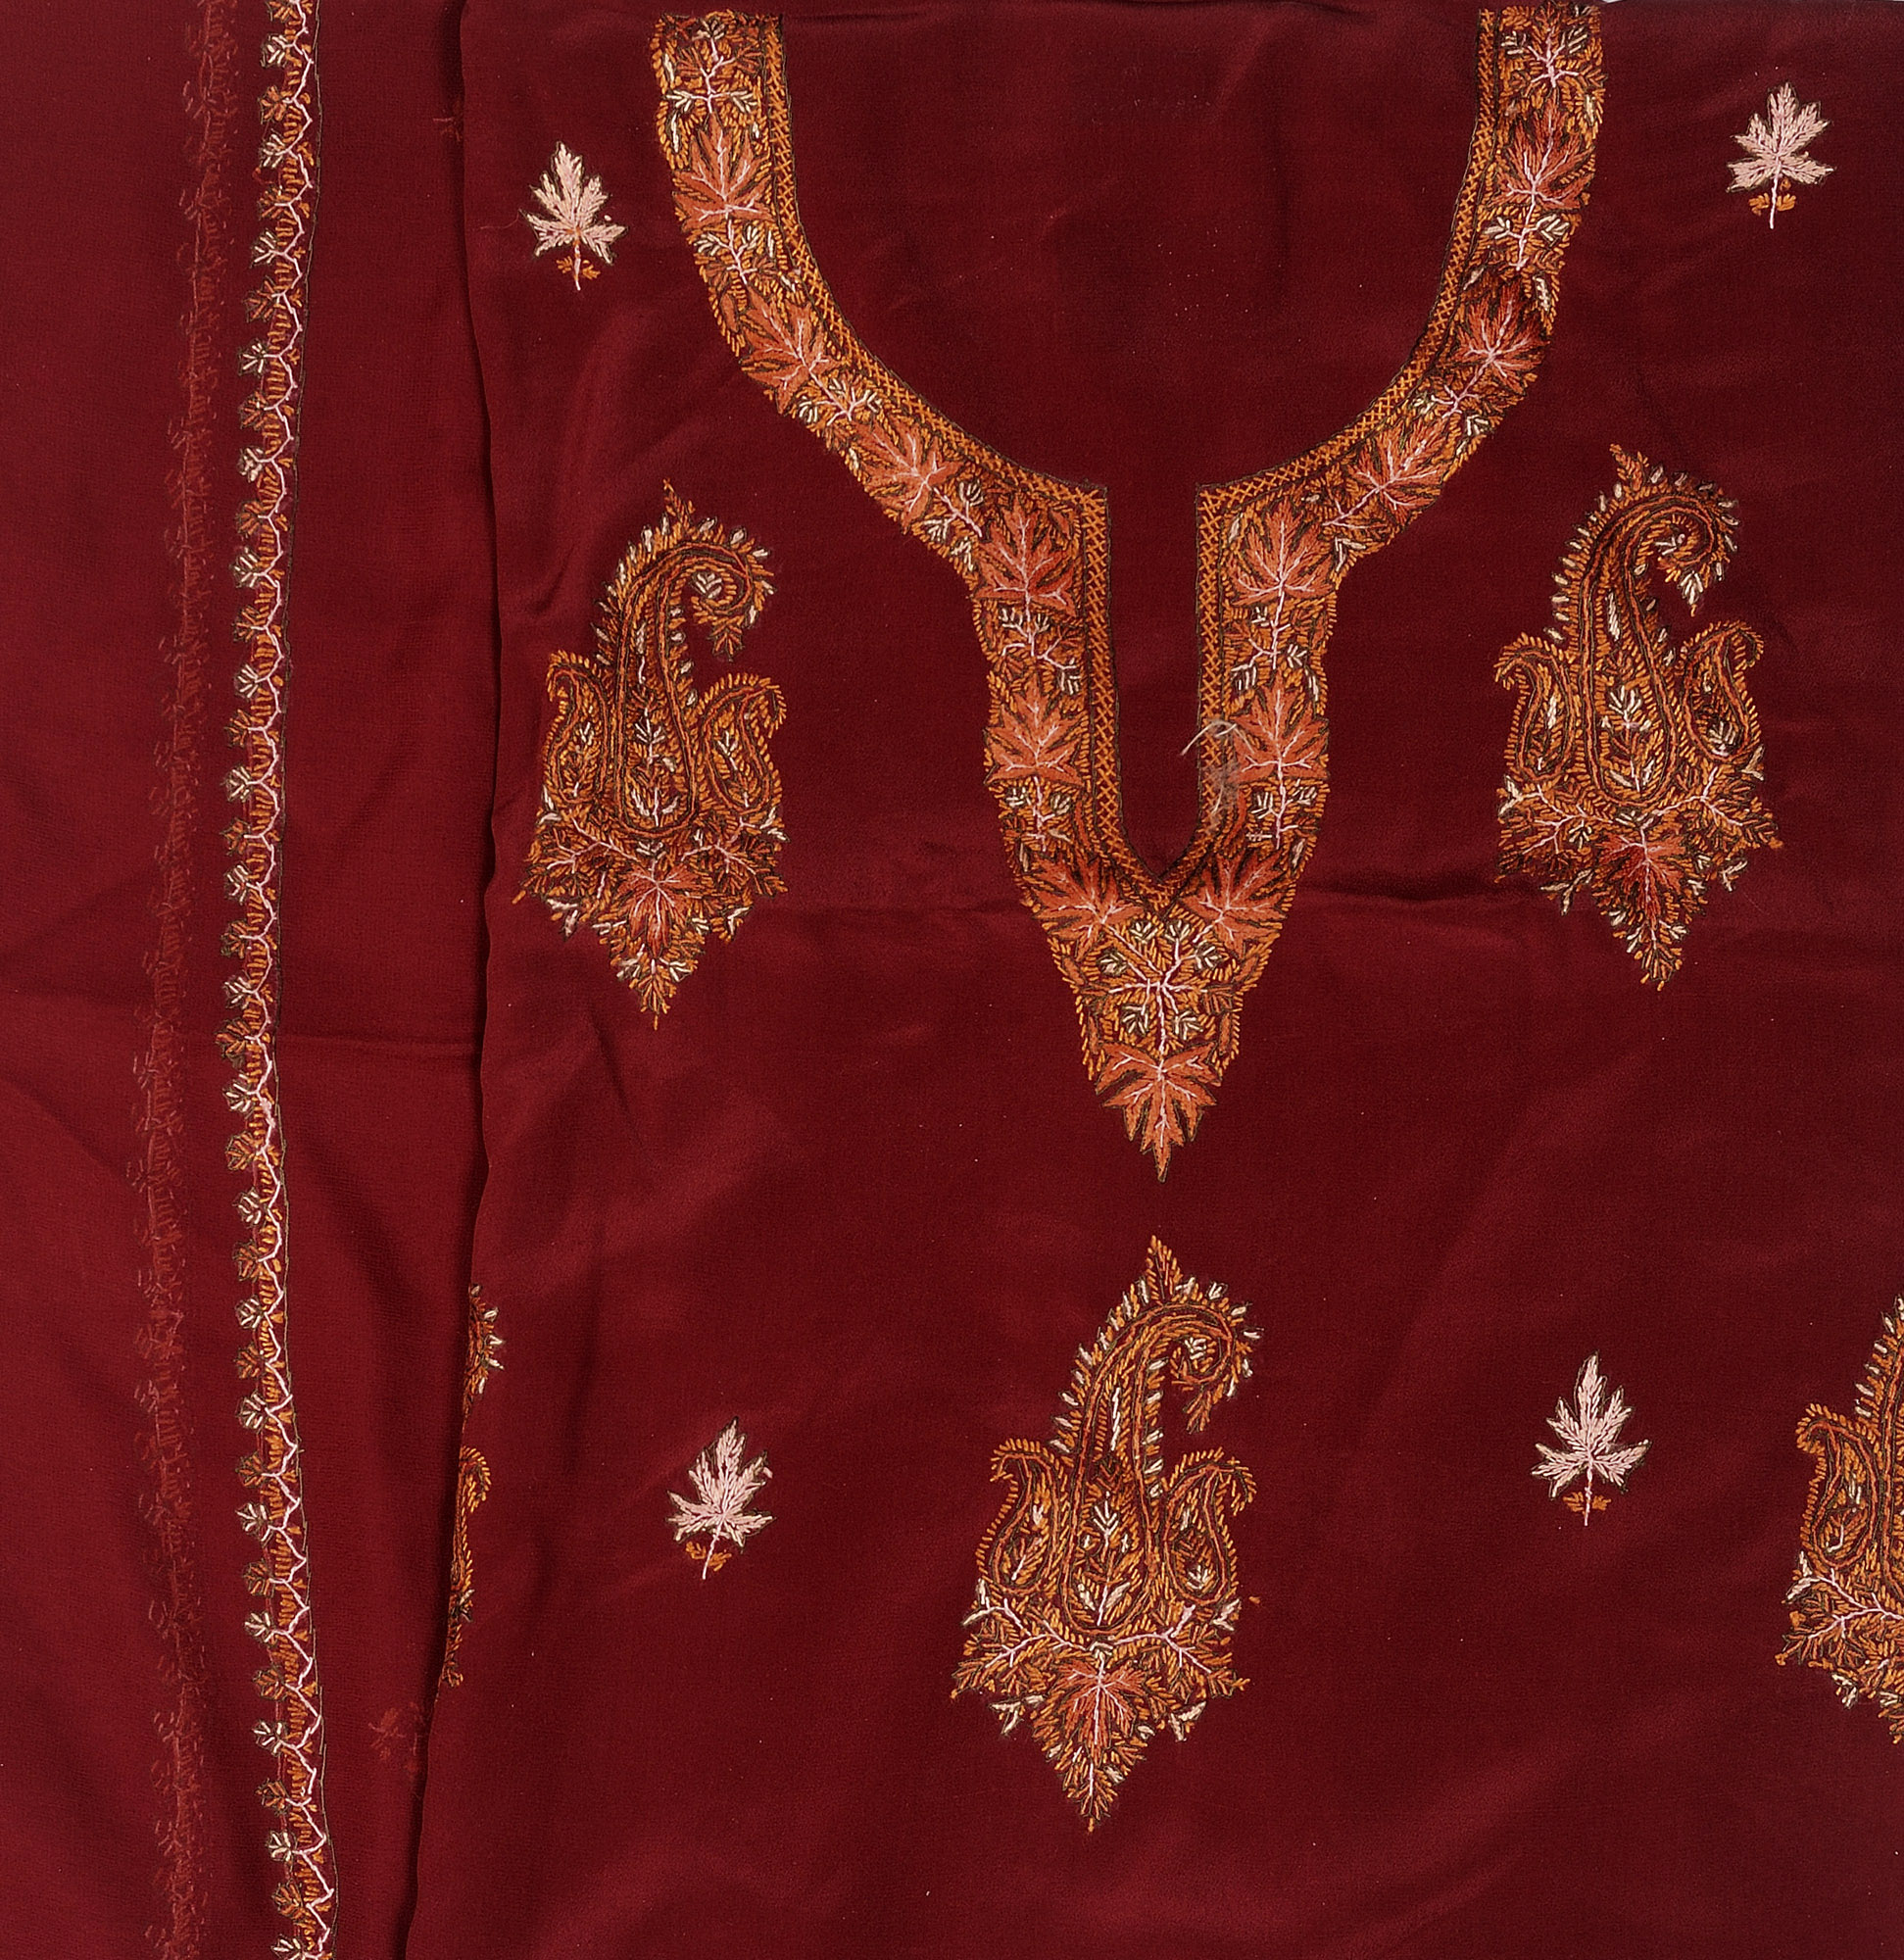 Maroon salwar kameez fabric from kashmir with sozni